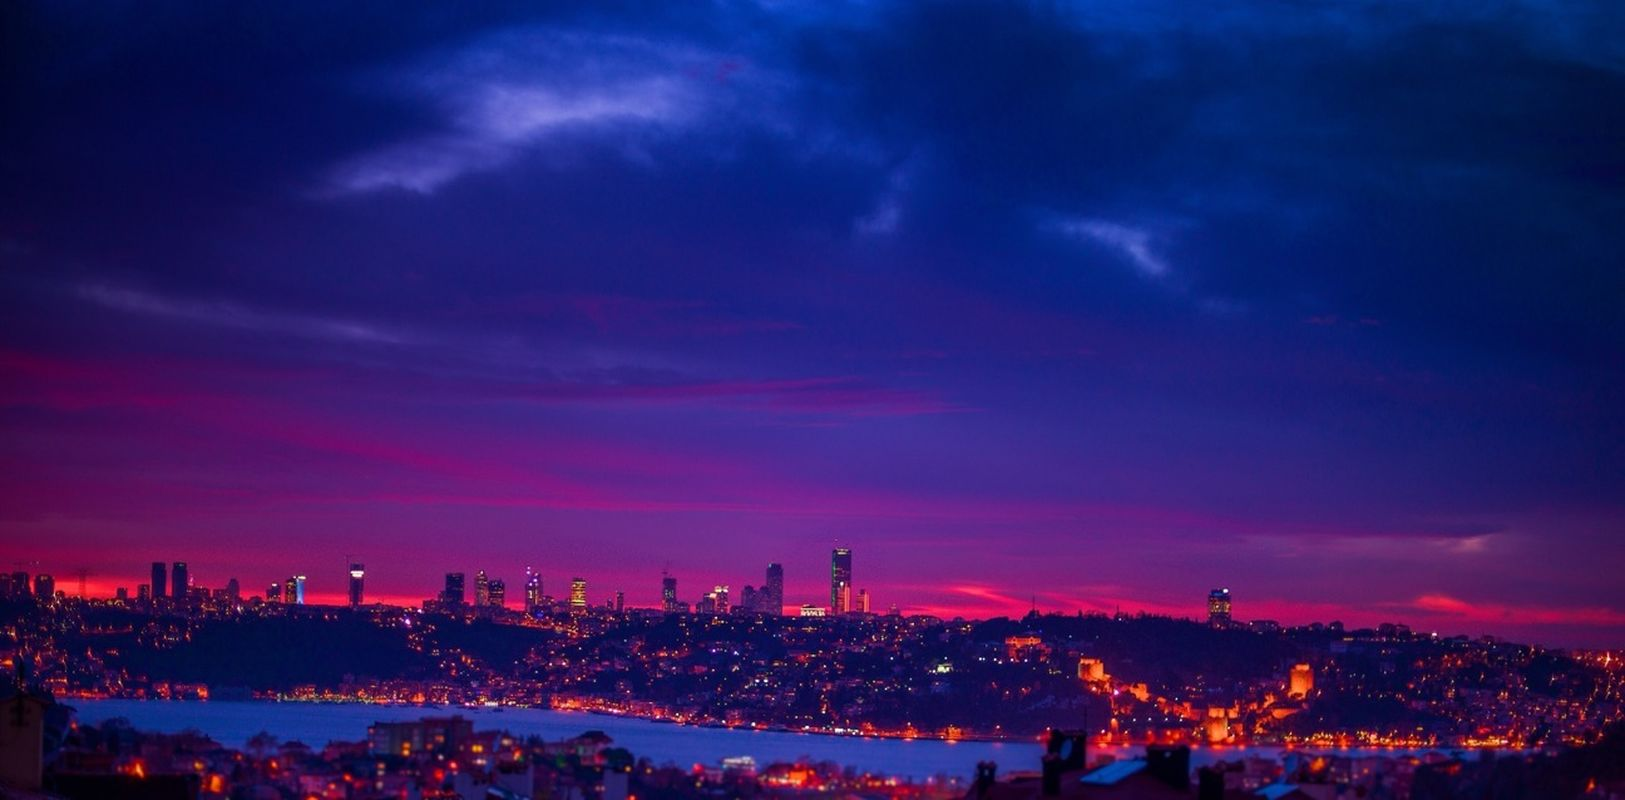 blue Night Lights Red clouds and sky Istanbul popular Hello world Great atmosphere instagram #sunset #sun #clouds #skylovers #sky #nature #beautifulinnature #naturalbeauty #photography #landscape eye4photography  bisgen Relaxing instagood sunset landscape Taking Photos by Ersin Bisgen